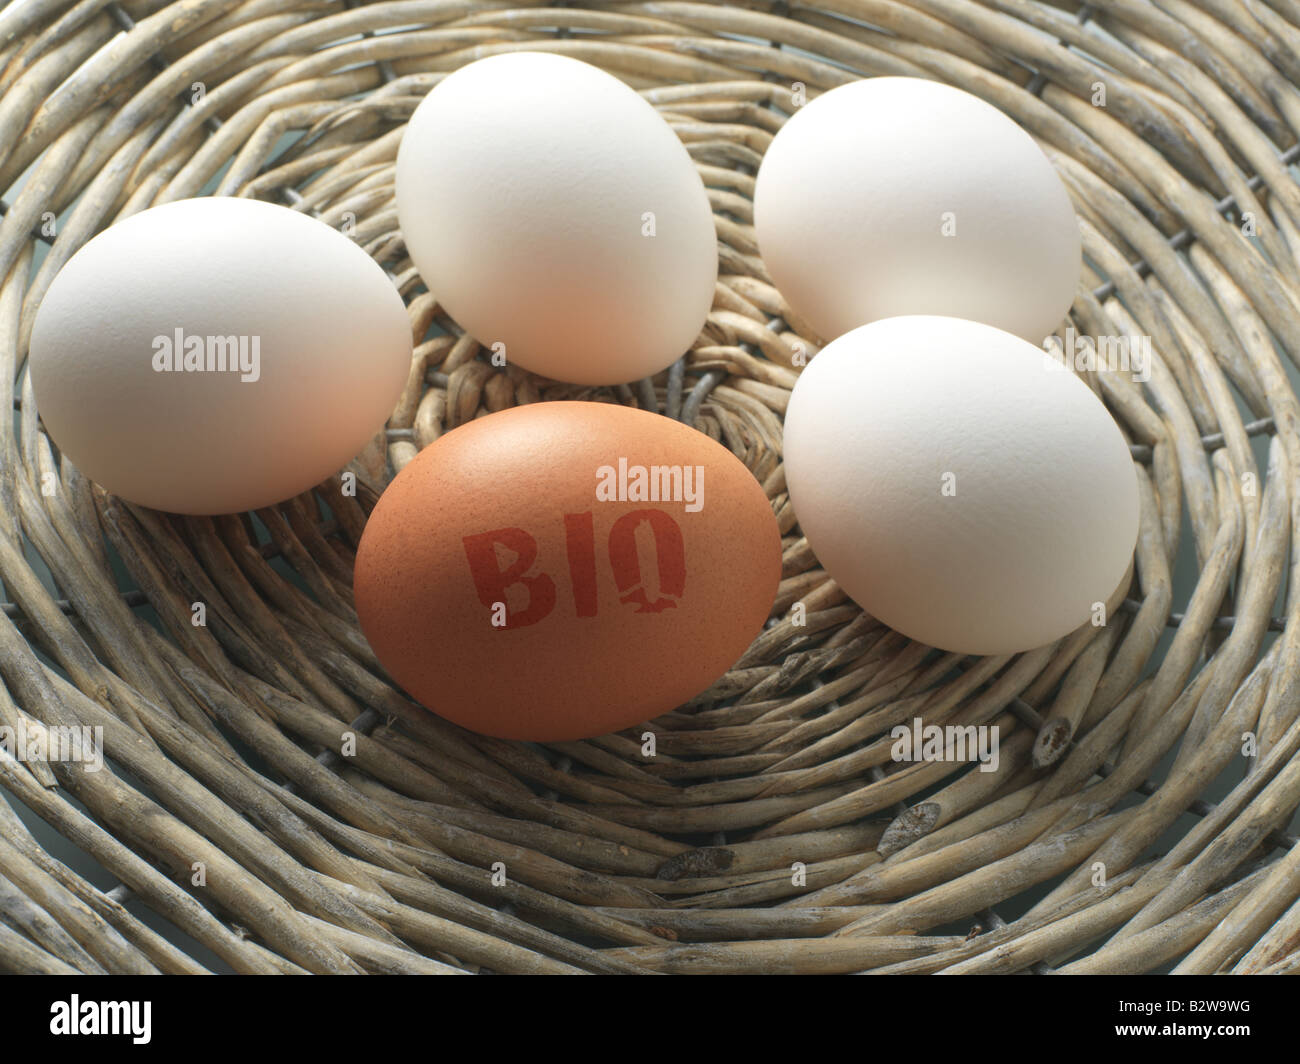 Bio egg - Stock Image